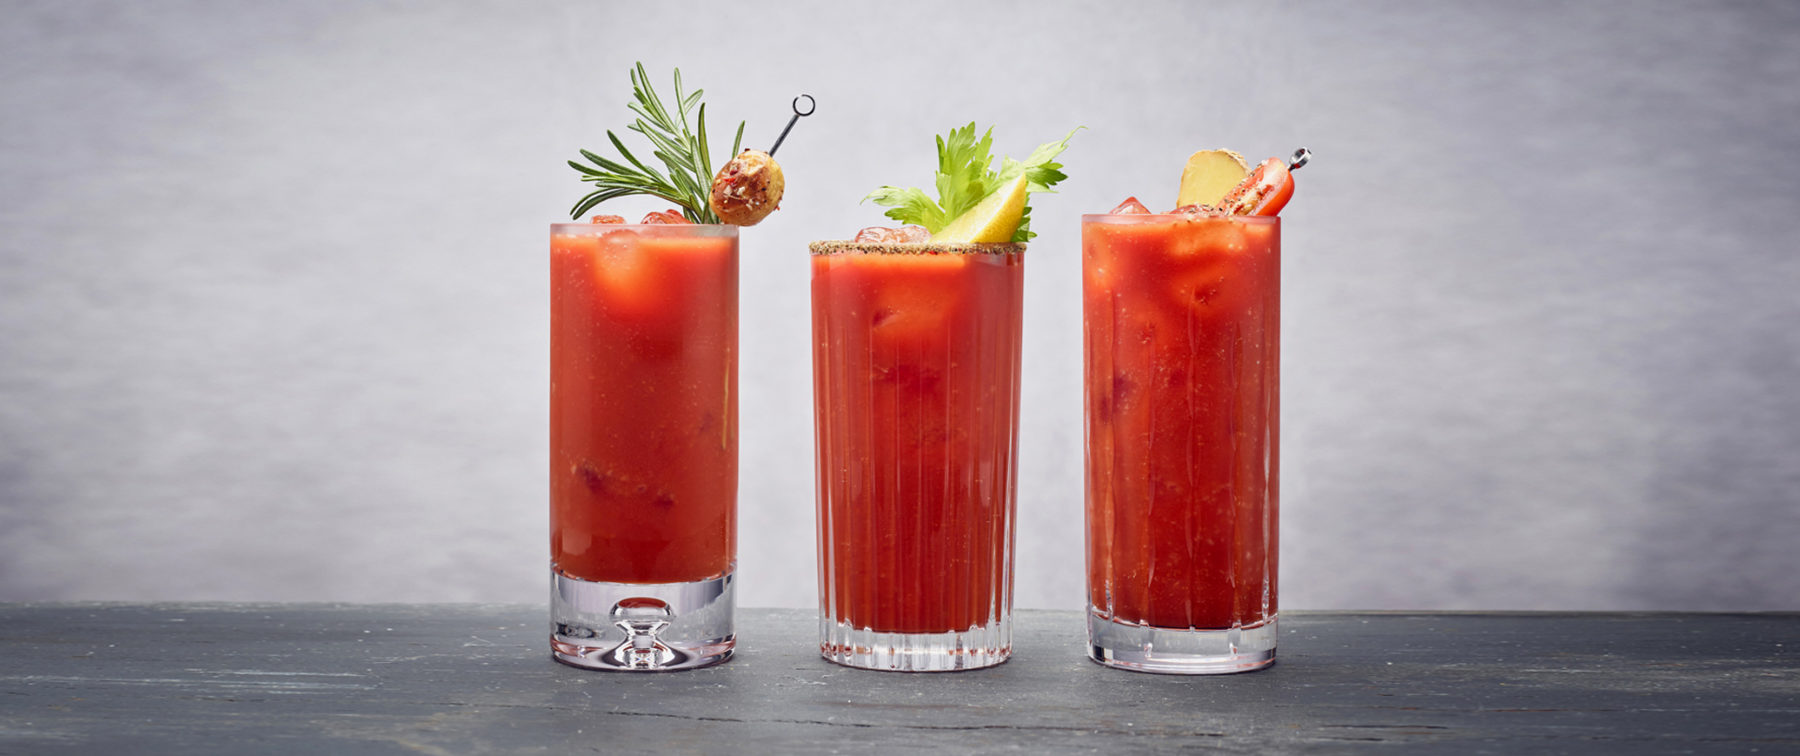 London's 7 best Bloody Marys are here to save your brunch